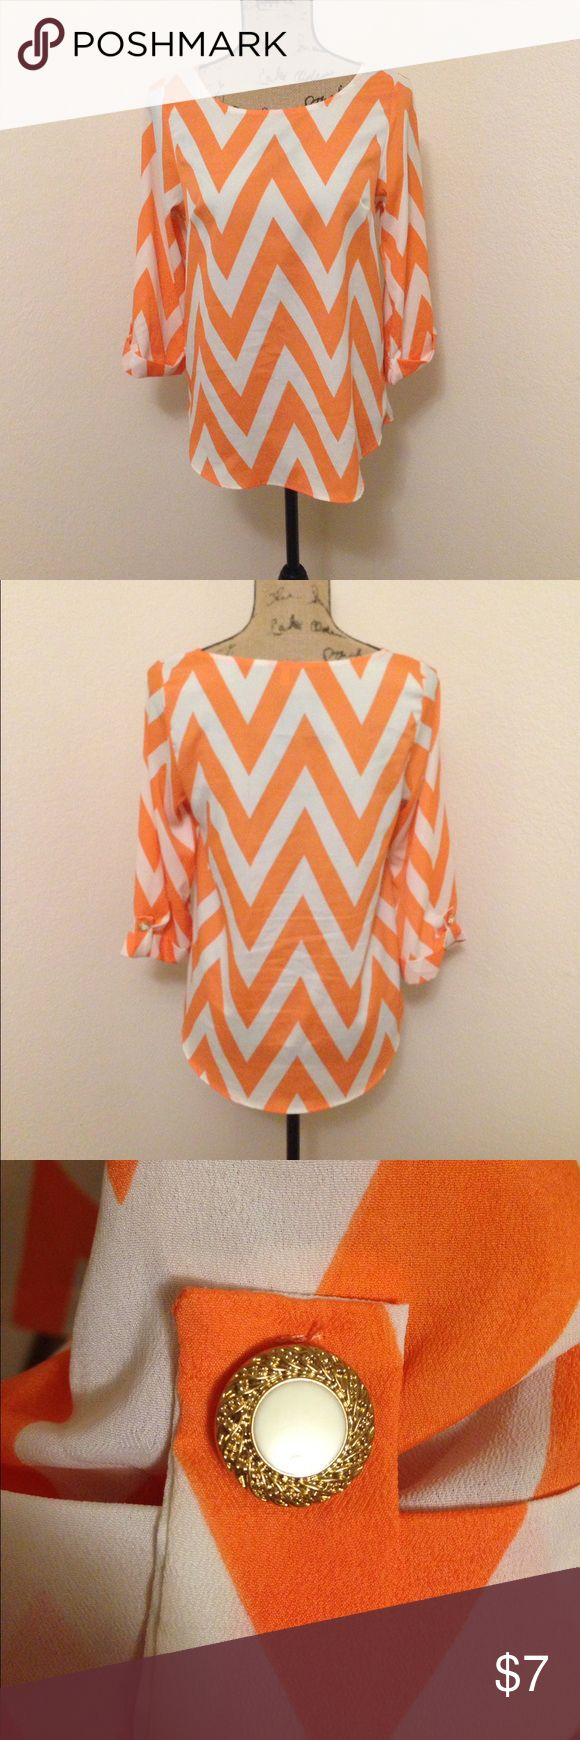 Chevron top with button detail on sleeve. Orange chevron top with button detail on sleeve Tops Blouses